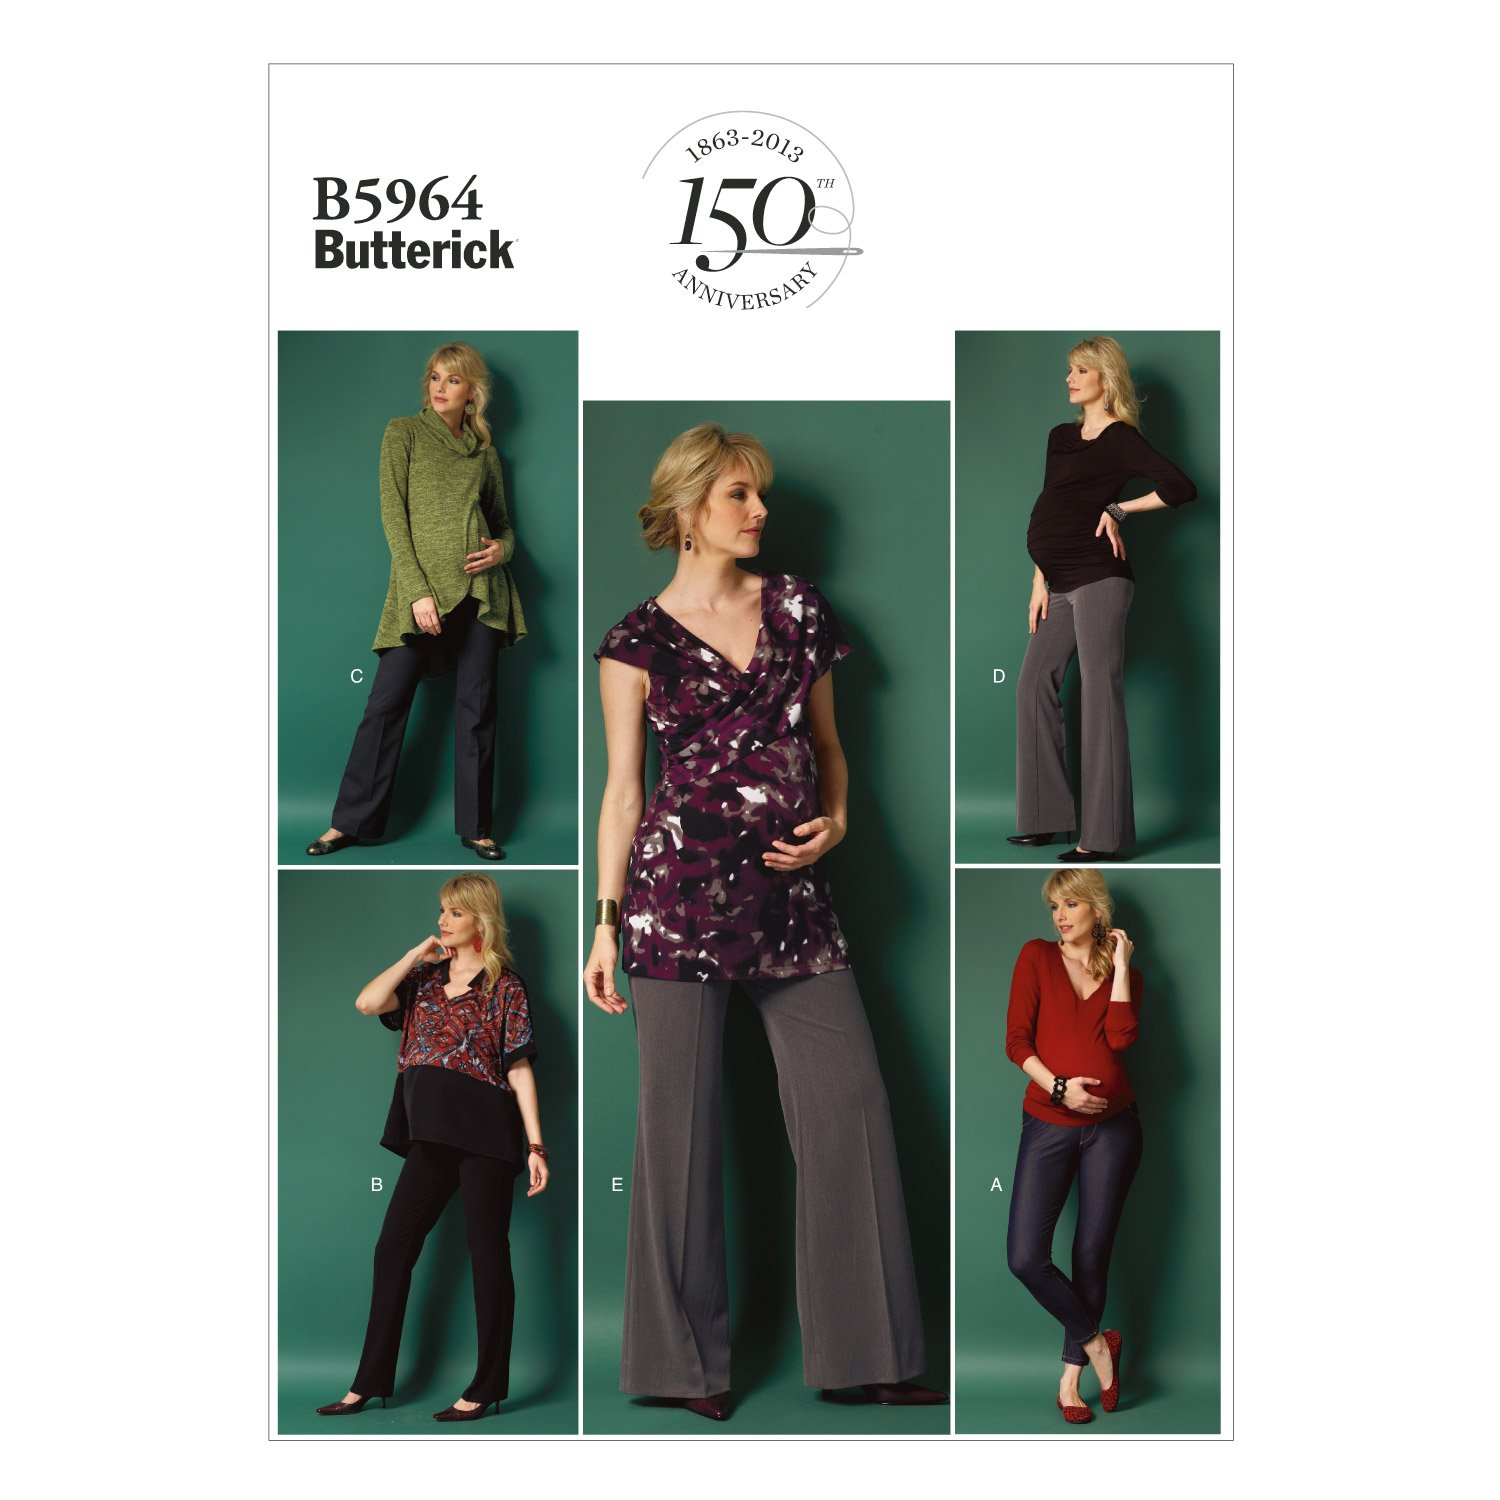 98049ee73c15c Butterick Patterns B5964 Misses' Maternity Pants Sewing Template, Size E5  (14-16-18-20-22): Amazon.ca: Home & Kitchen